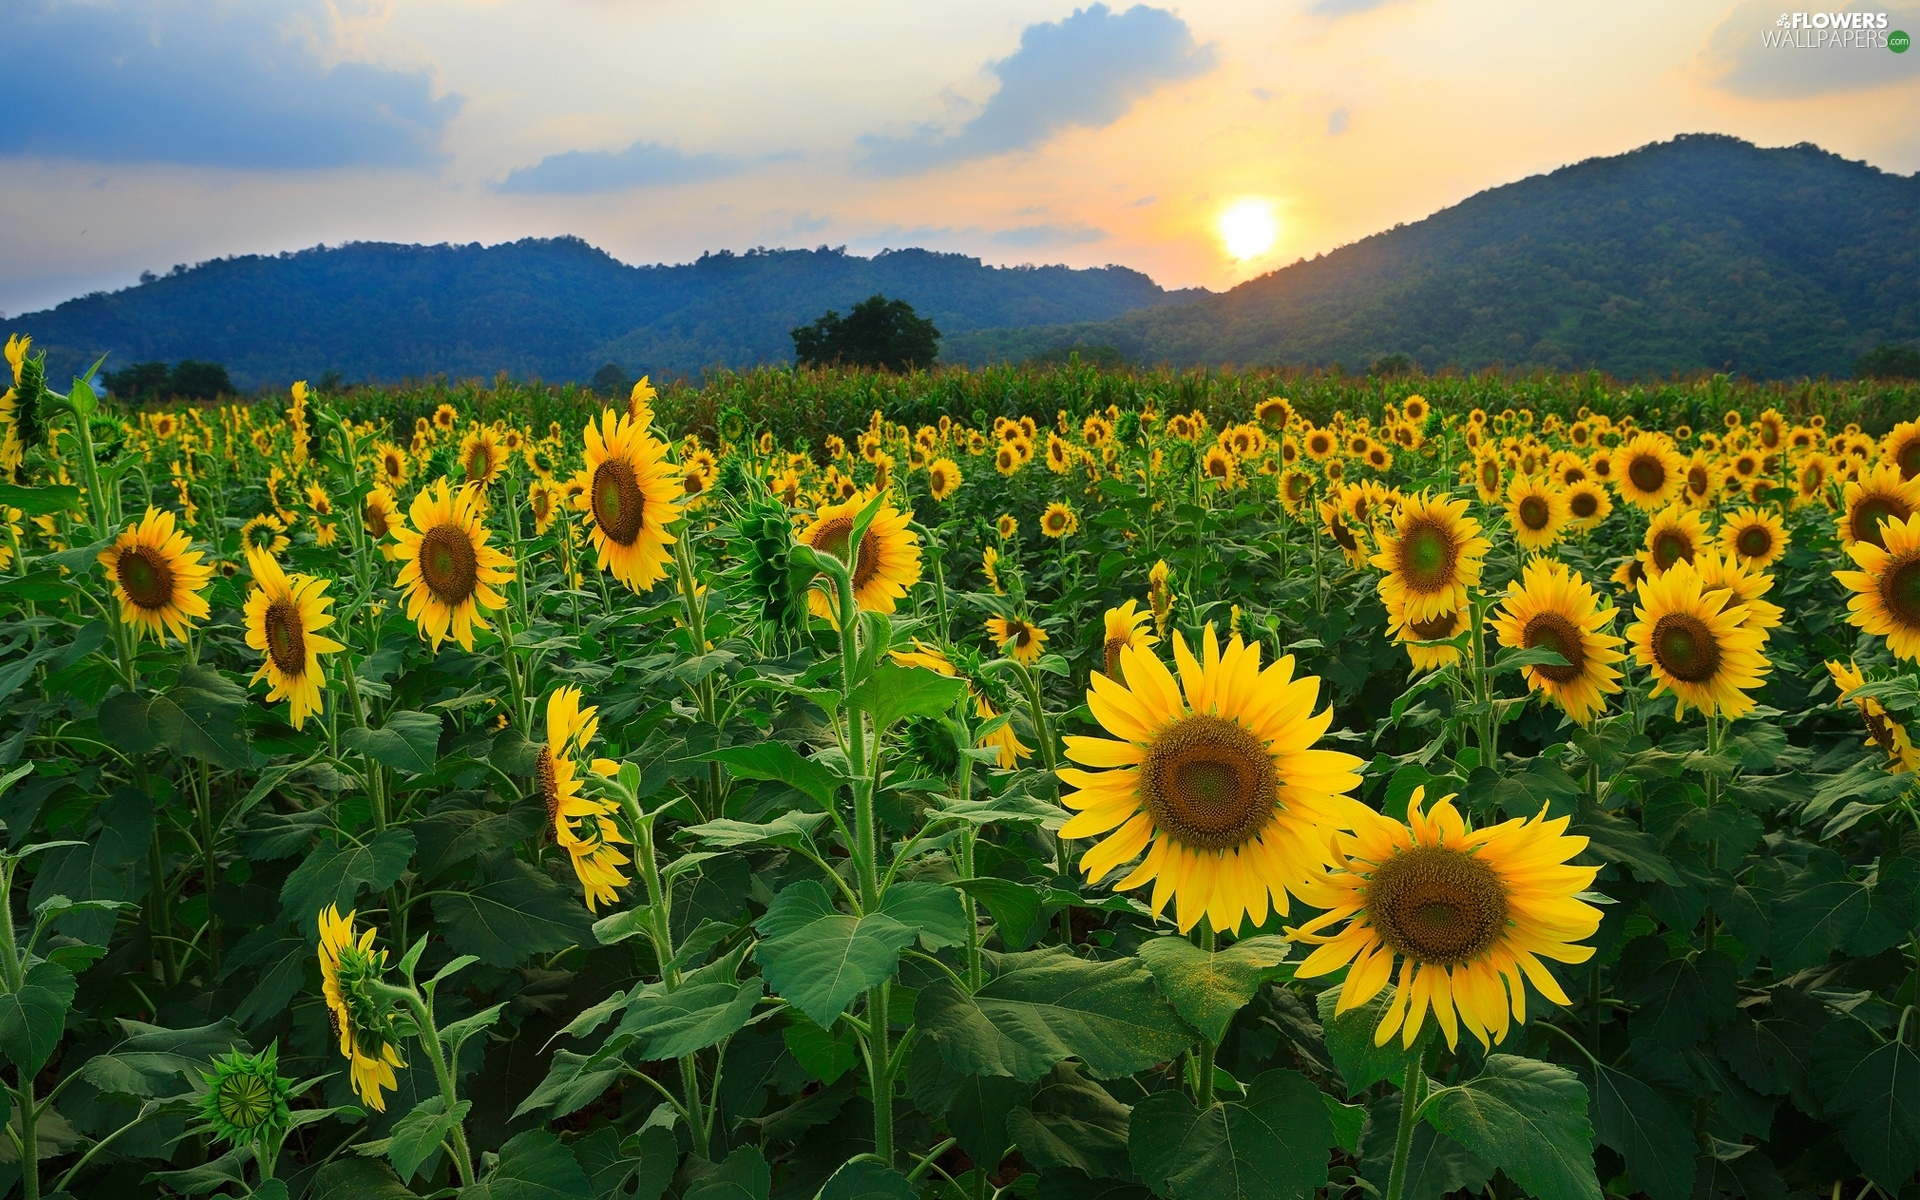 West, Mountains, Nice Sunflowers, Sun